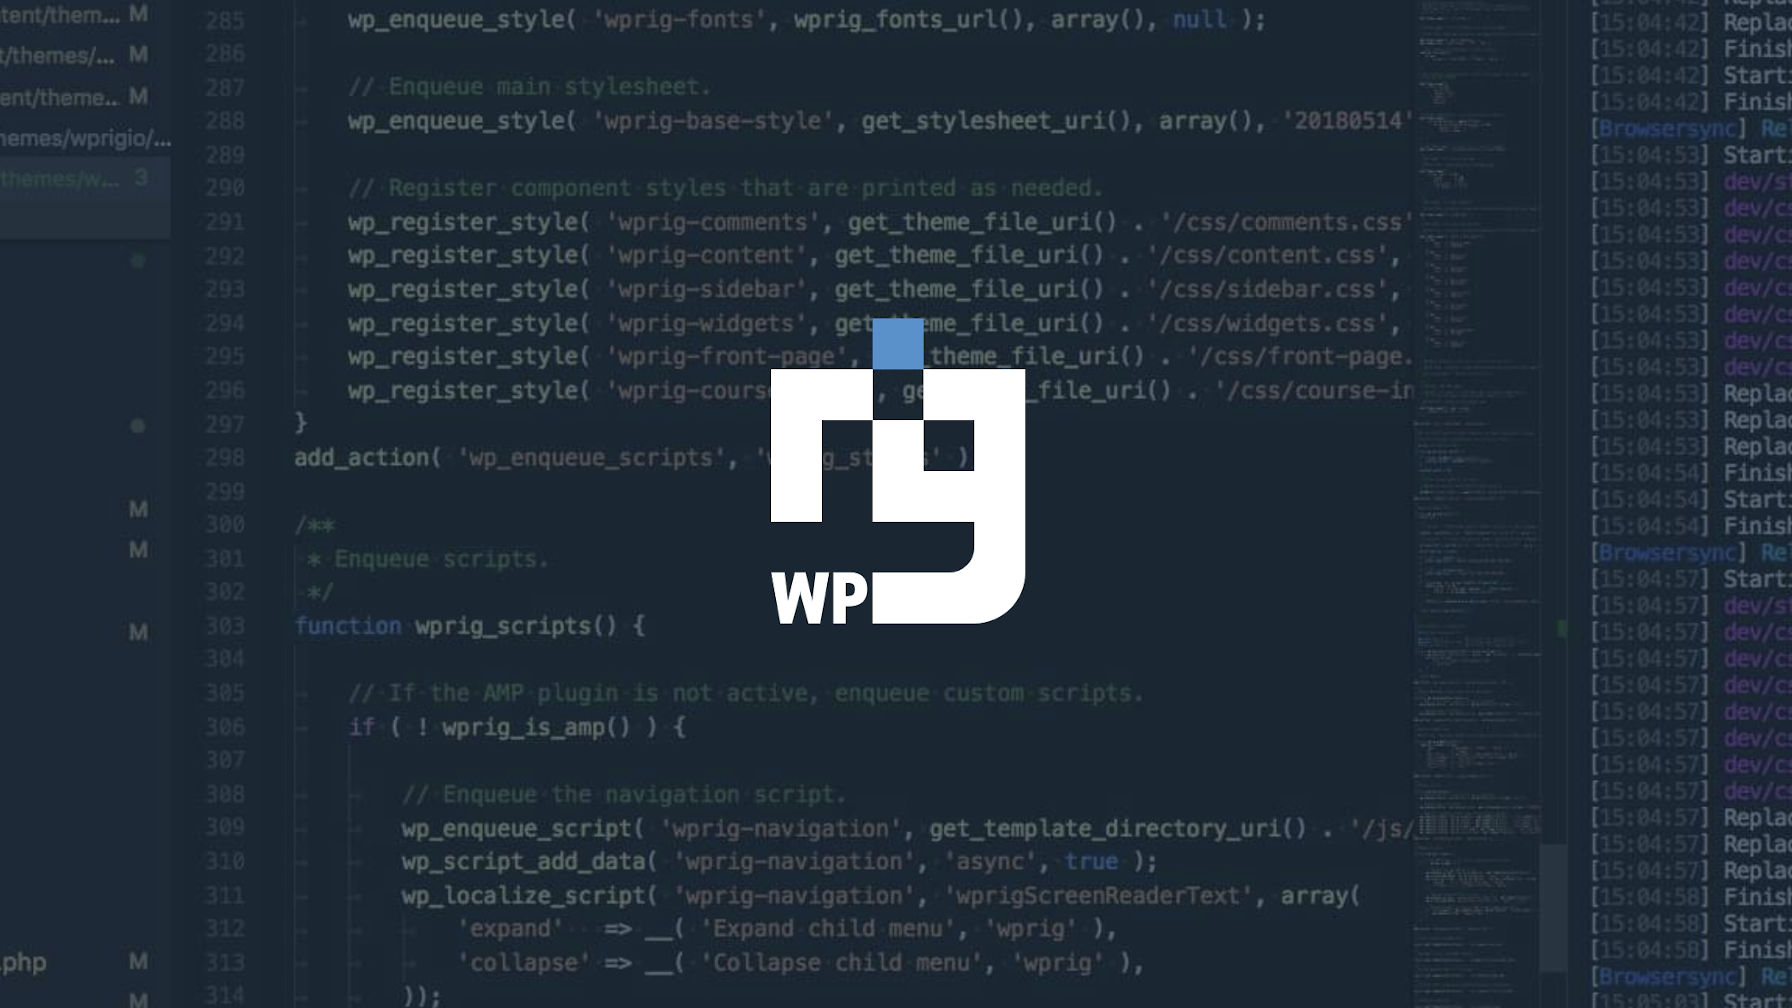 Decorative image of the WP Rig logo with a code editor in the background.